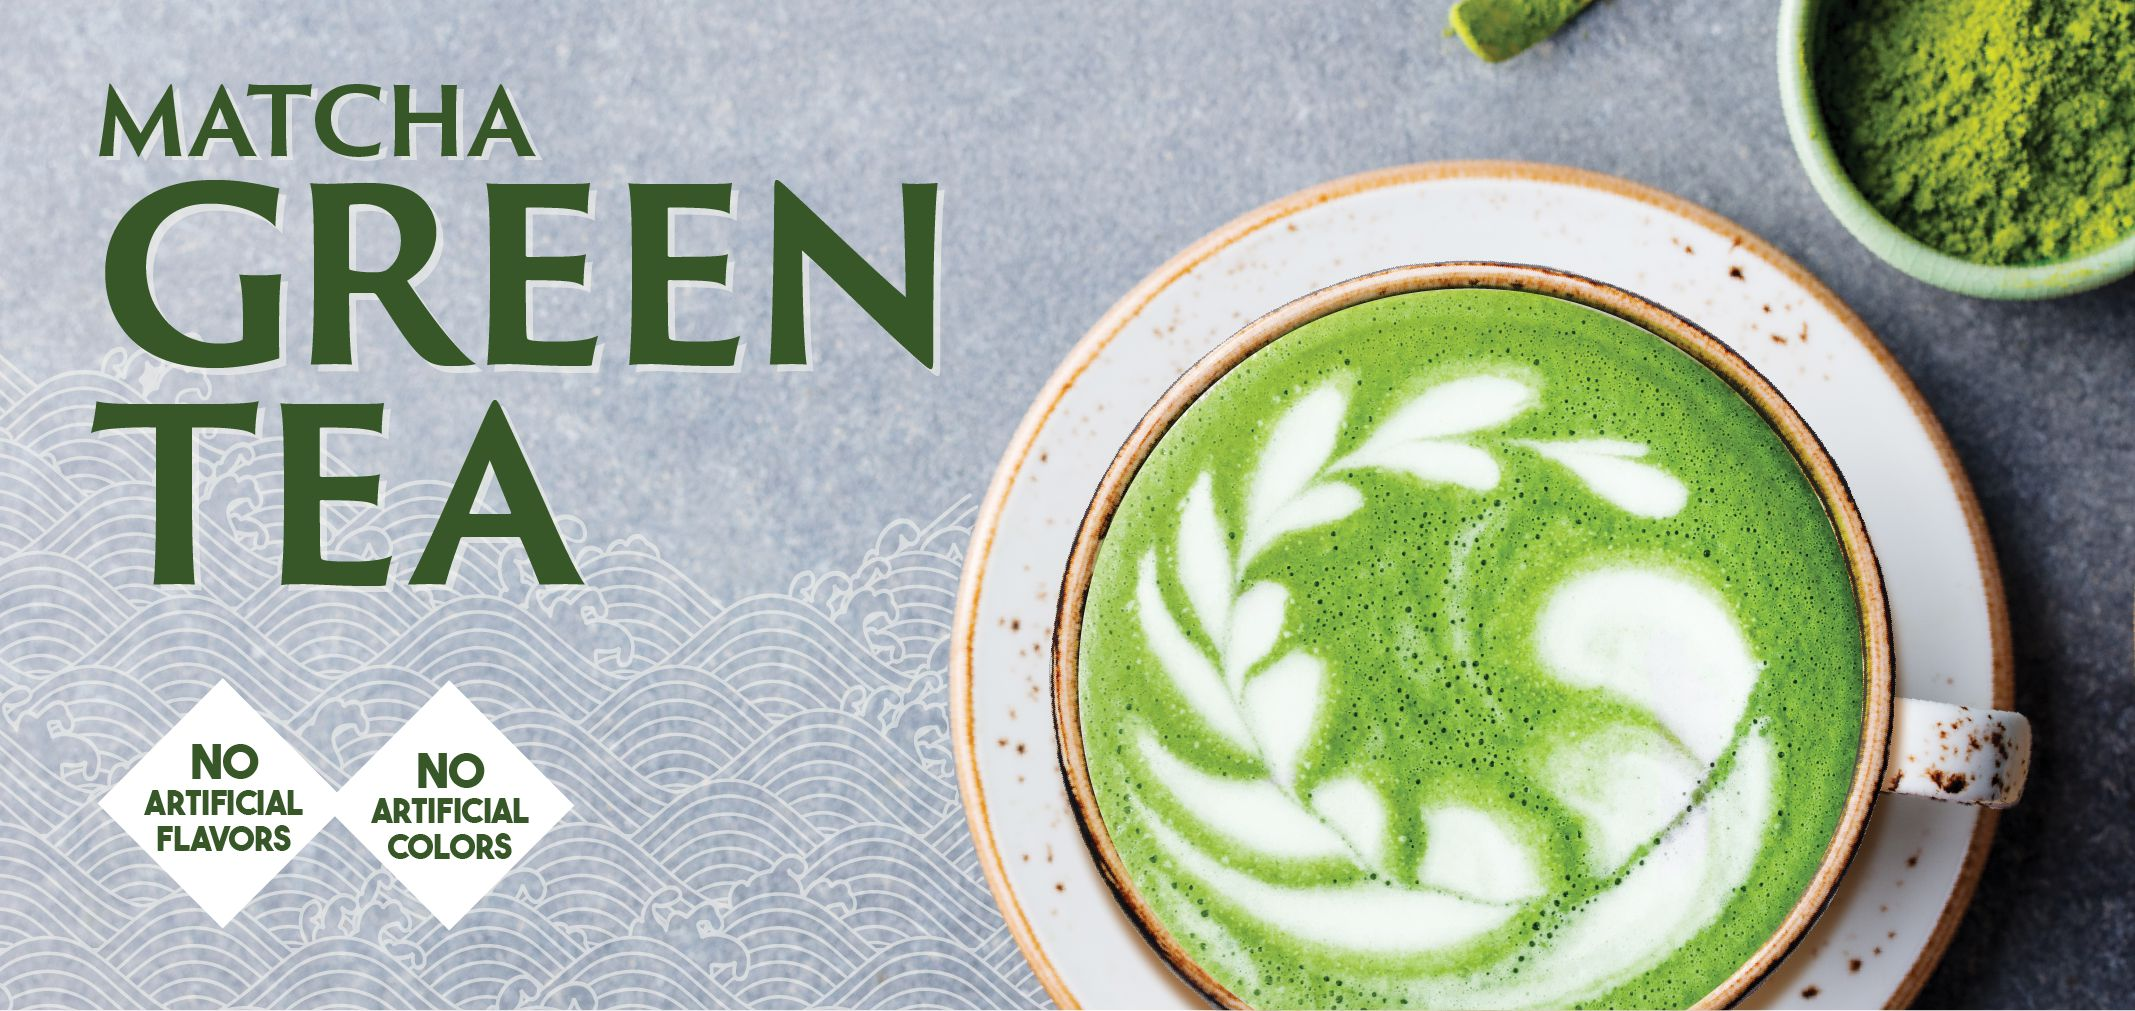 matcha green tea label image